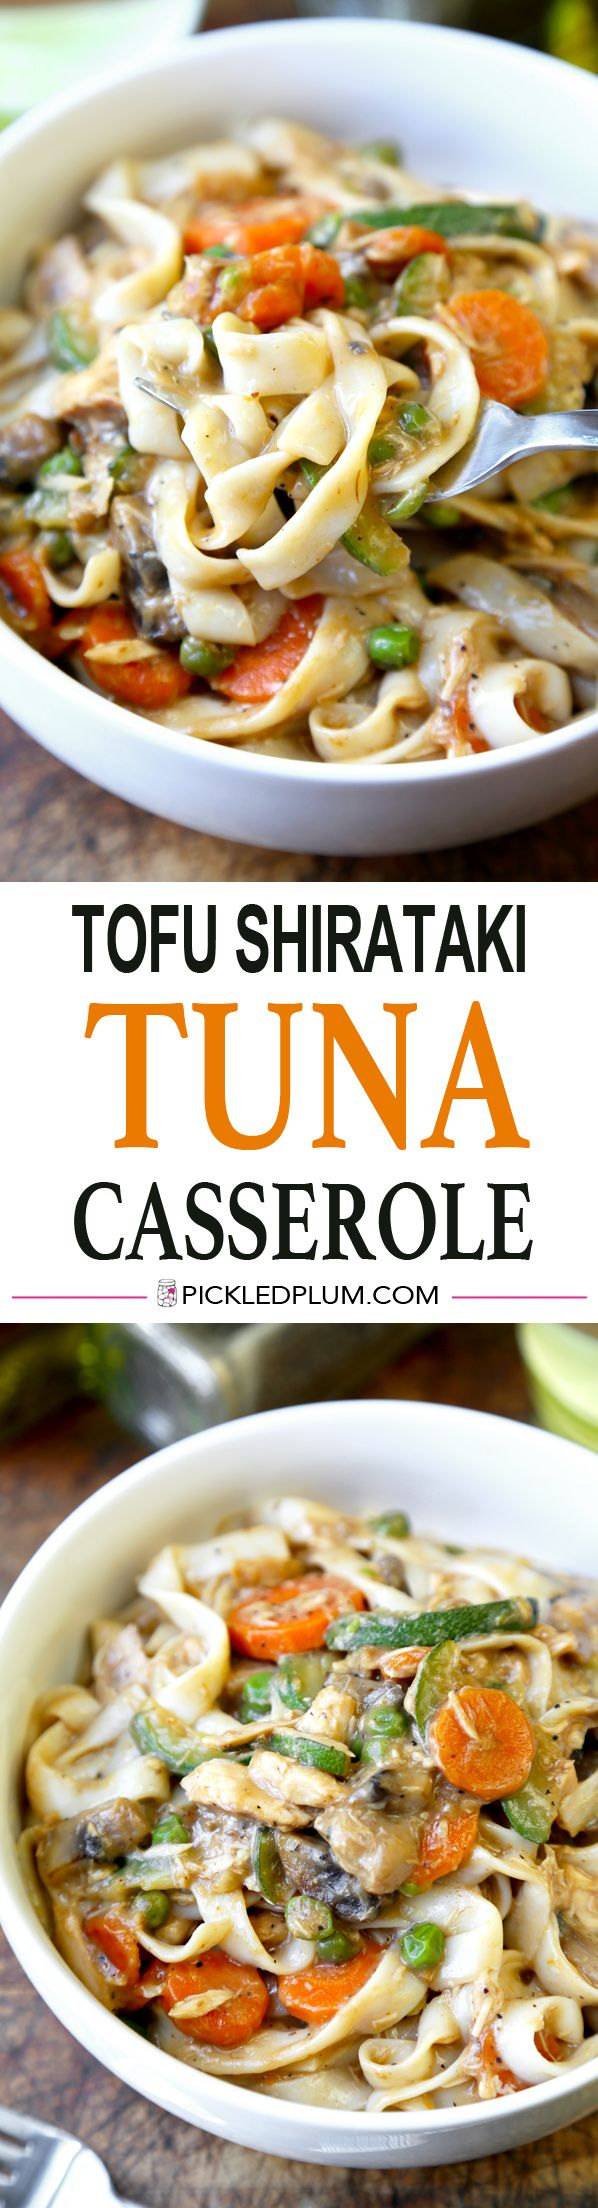 The healthiest tuna noodle casserole made with tofu shirataki noodles, low fat cream of mushroom soup and plenty of vegetables! Healthy recipe that's also low in calories - http://www.pickledplum.com/tofu-shirataki-tuna-noodle-casserole/